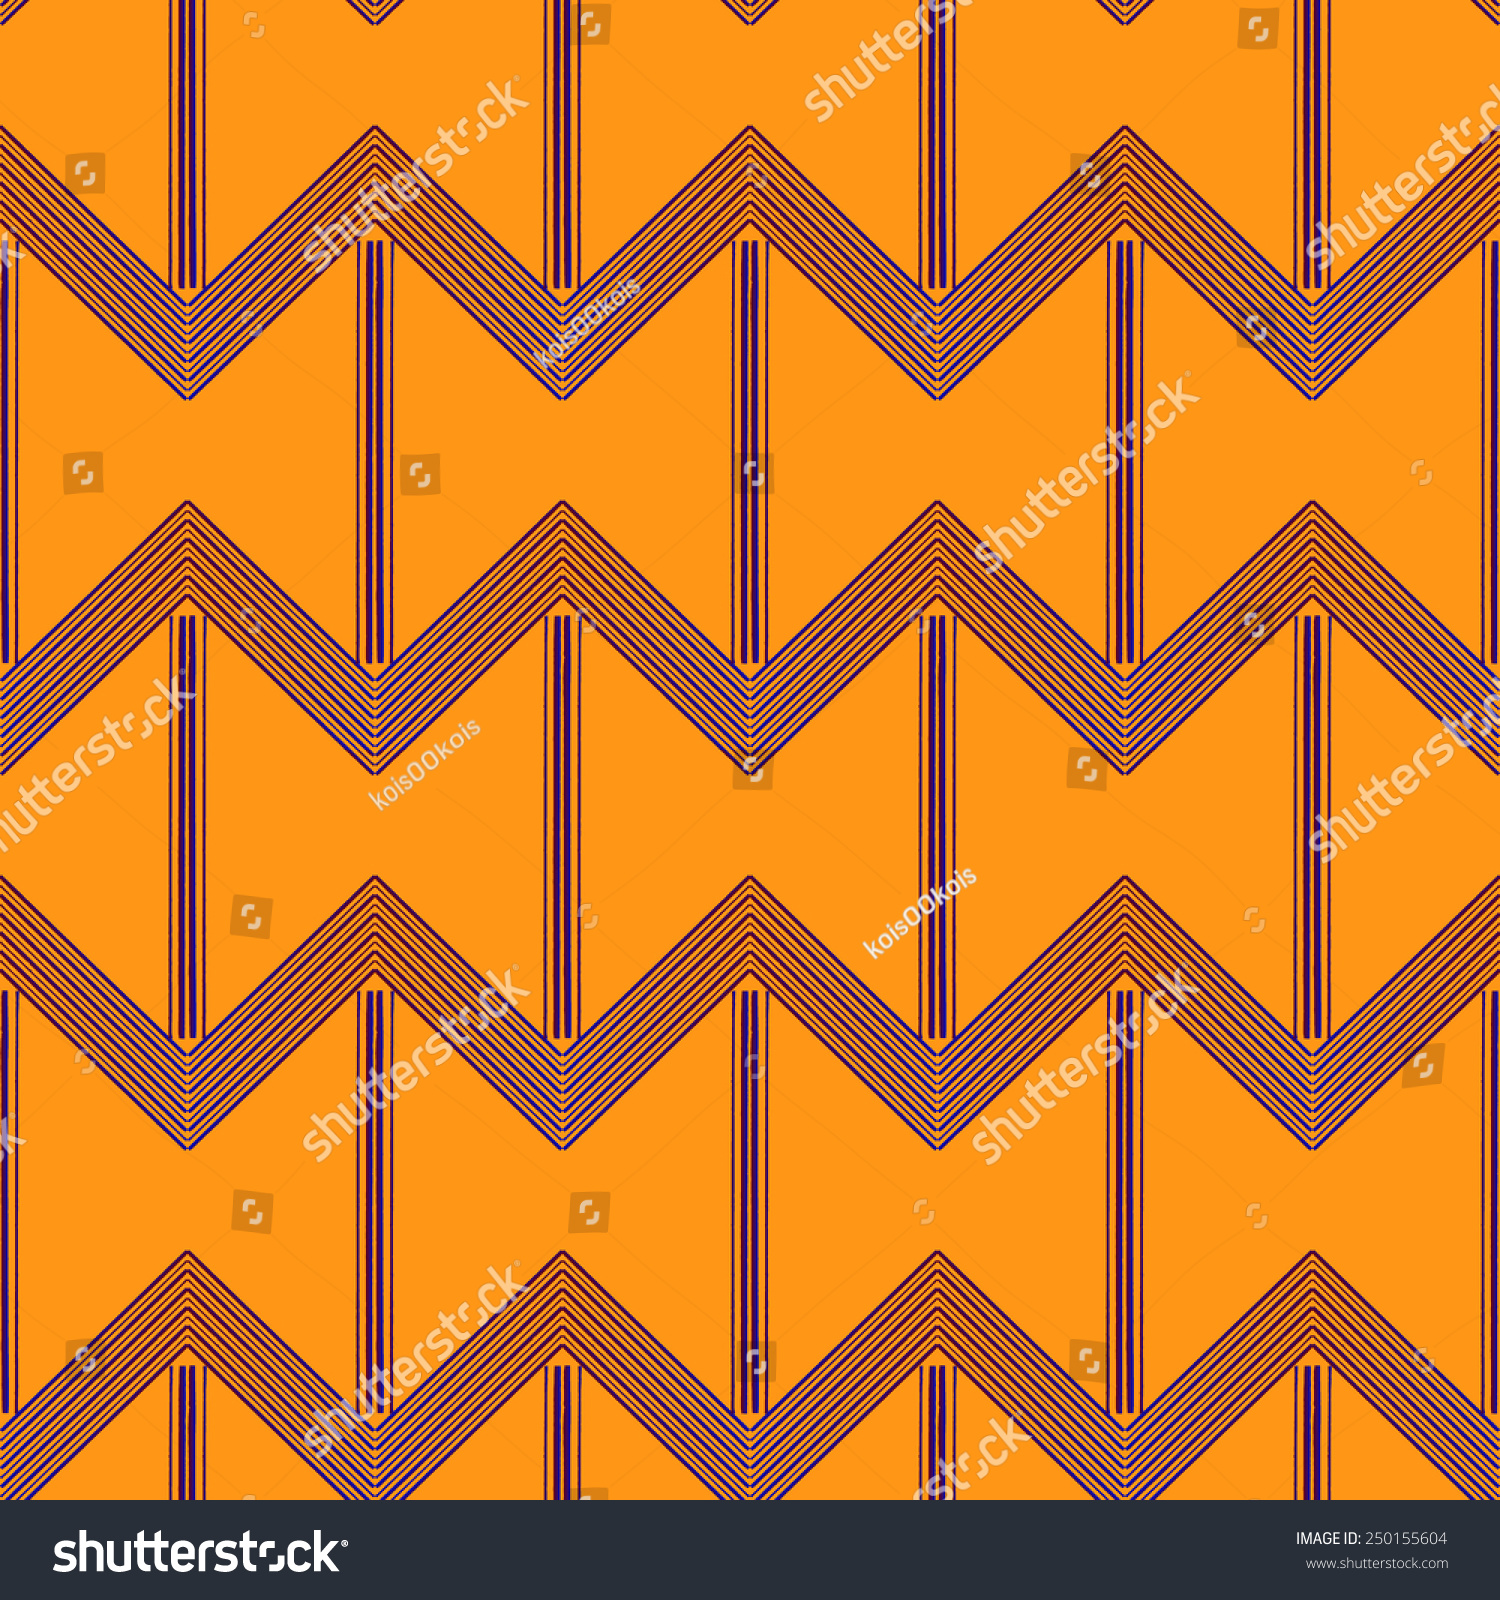 Abstract Geometric Art Deco Seamless Pattern Stock Vector ...